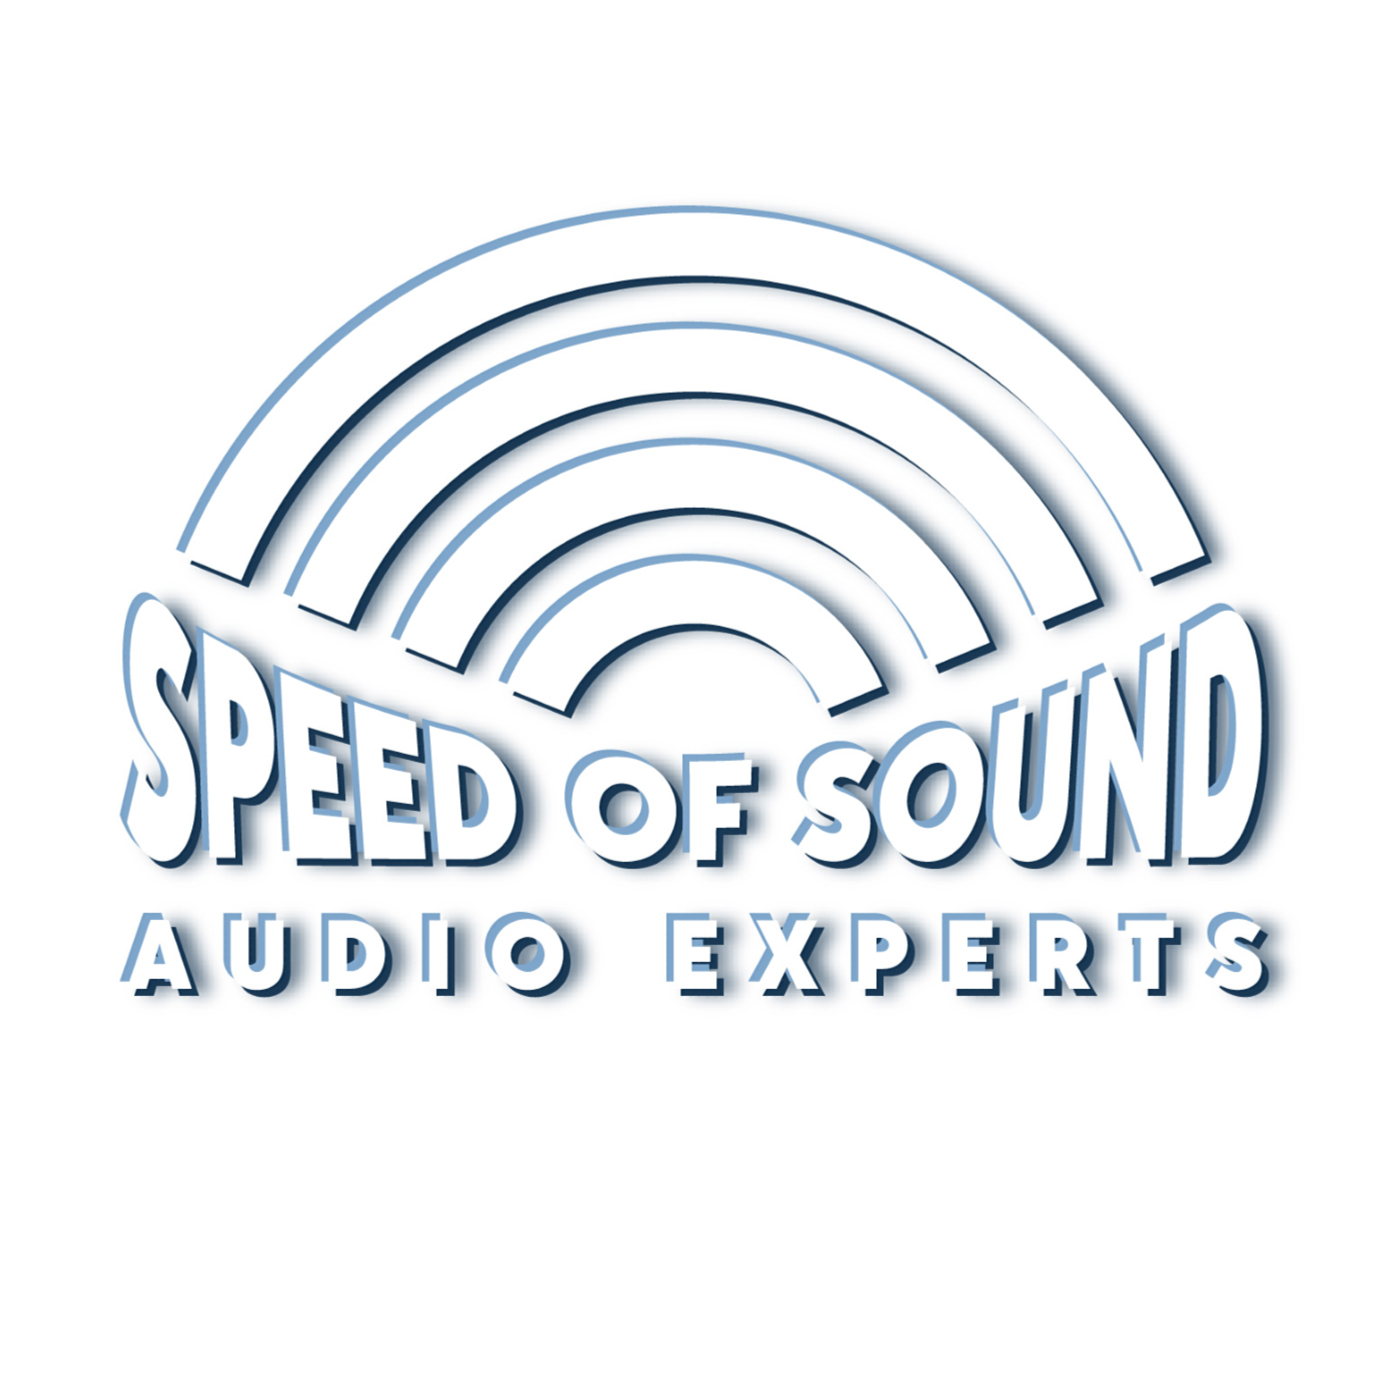 Speed of Sound Audio Experts